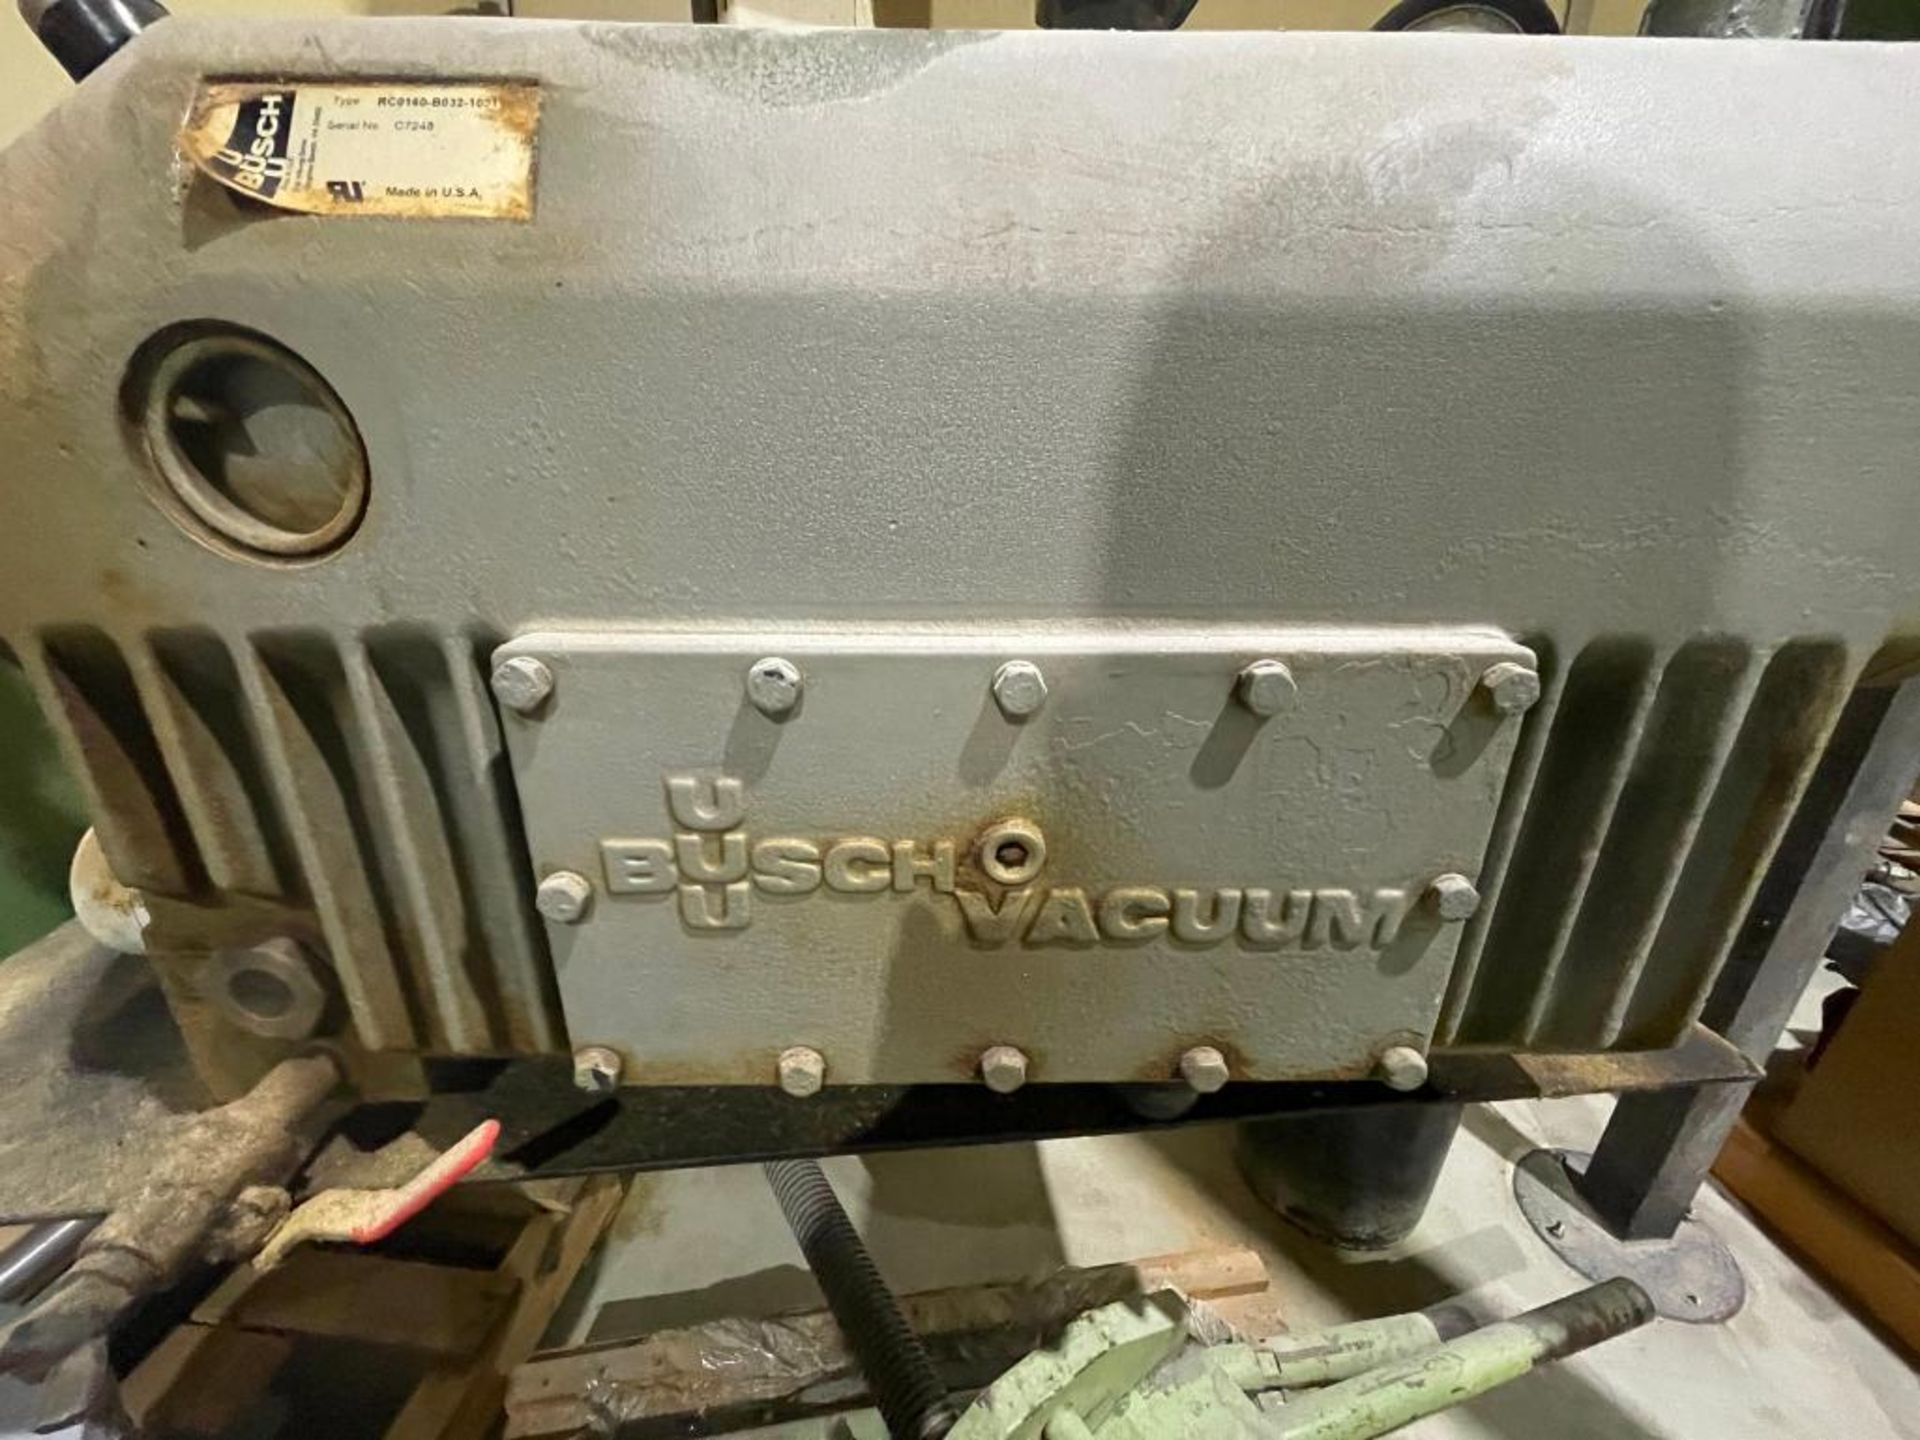 Busch single stage rotary vacuum pump - Image 2 of 14